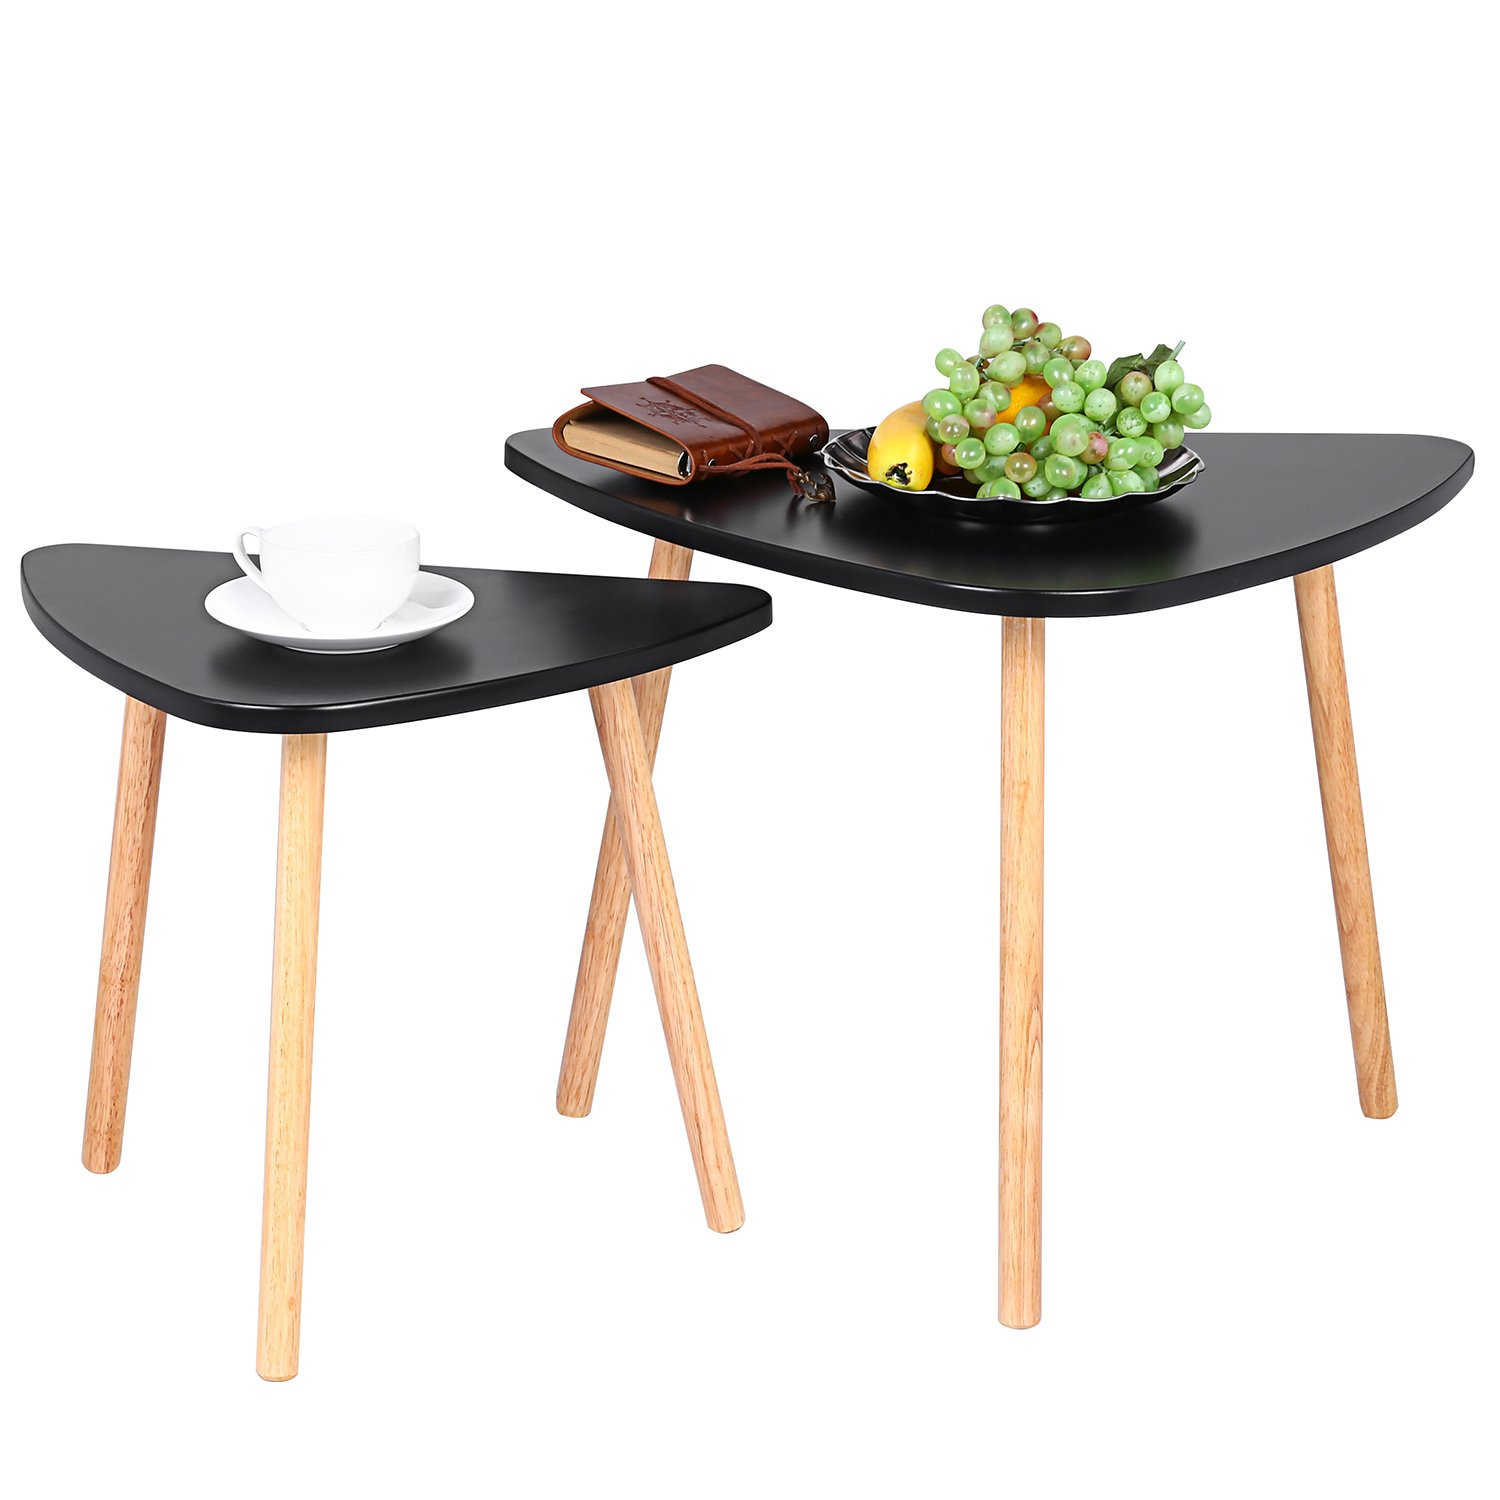 Benlet Black Mini Nesting Sofa End Slide Table, Over The Couch Stacking Coffee Table Set of 2, Modern Furniture Decor (Set 2 Table)